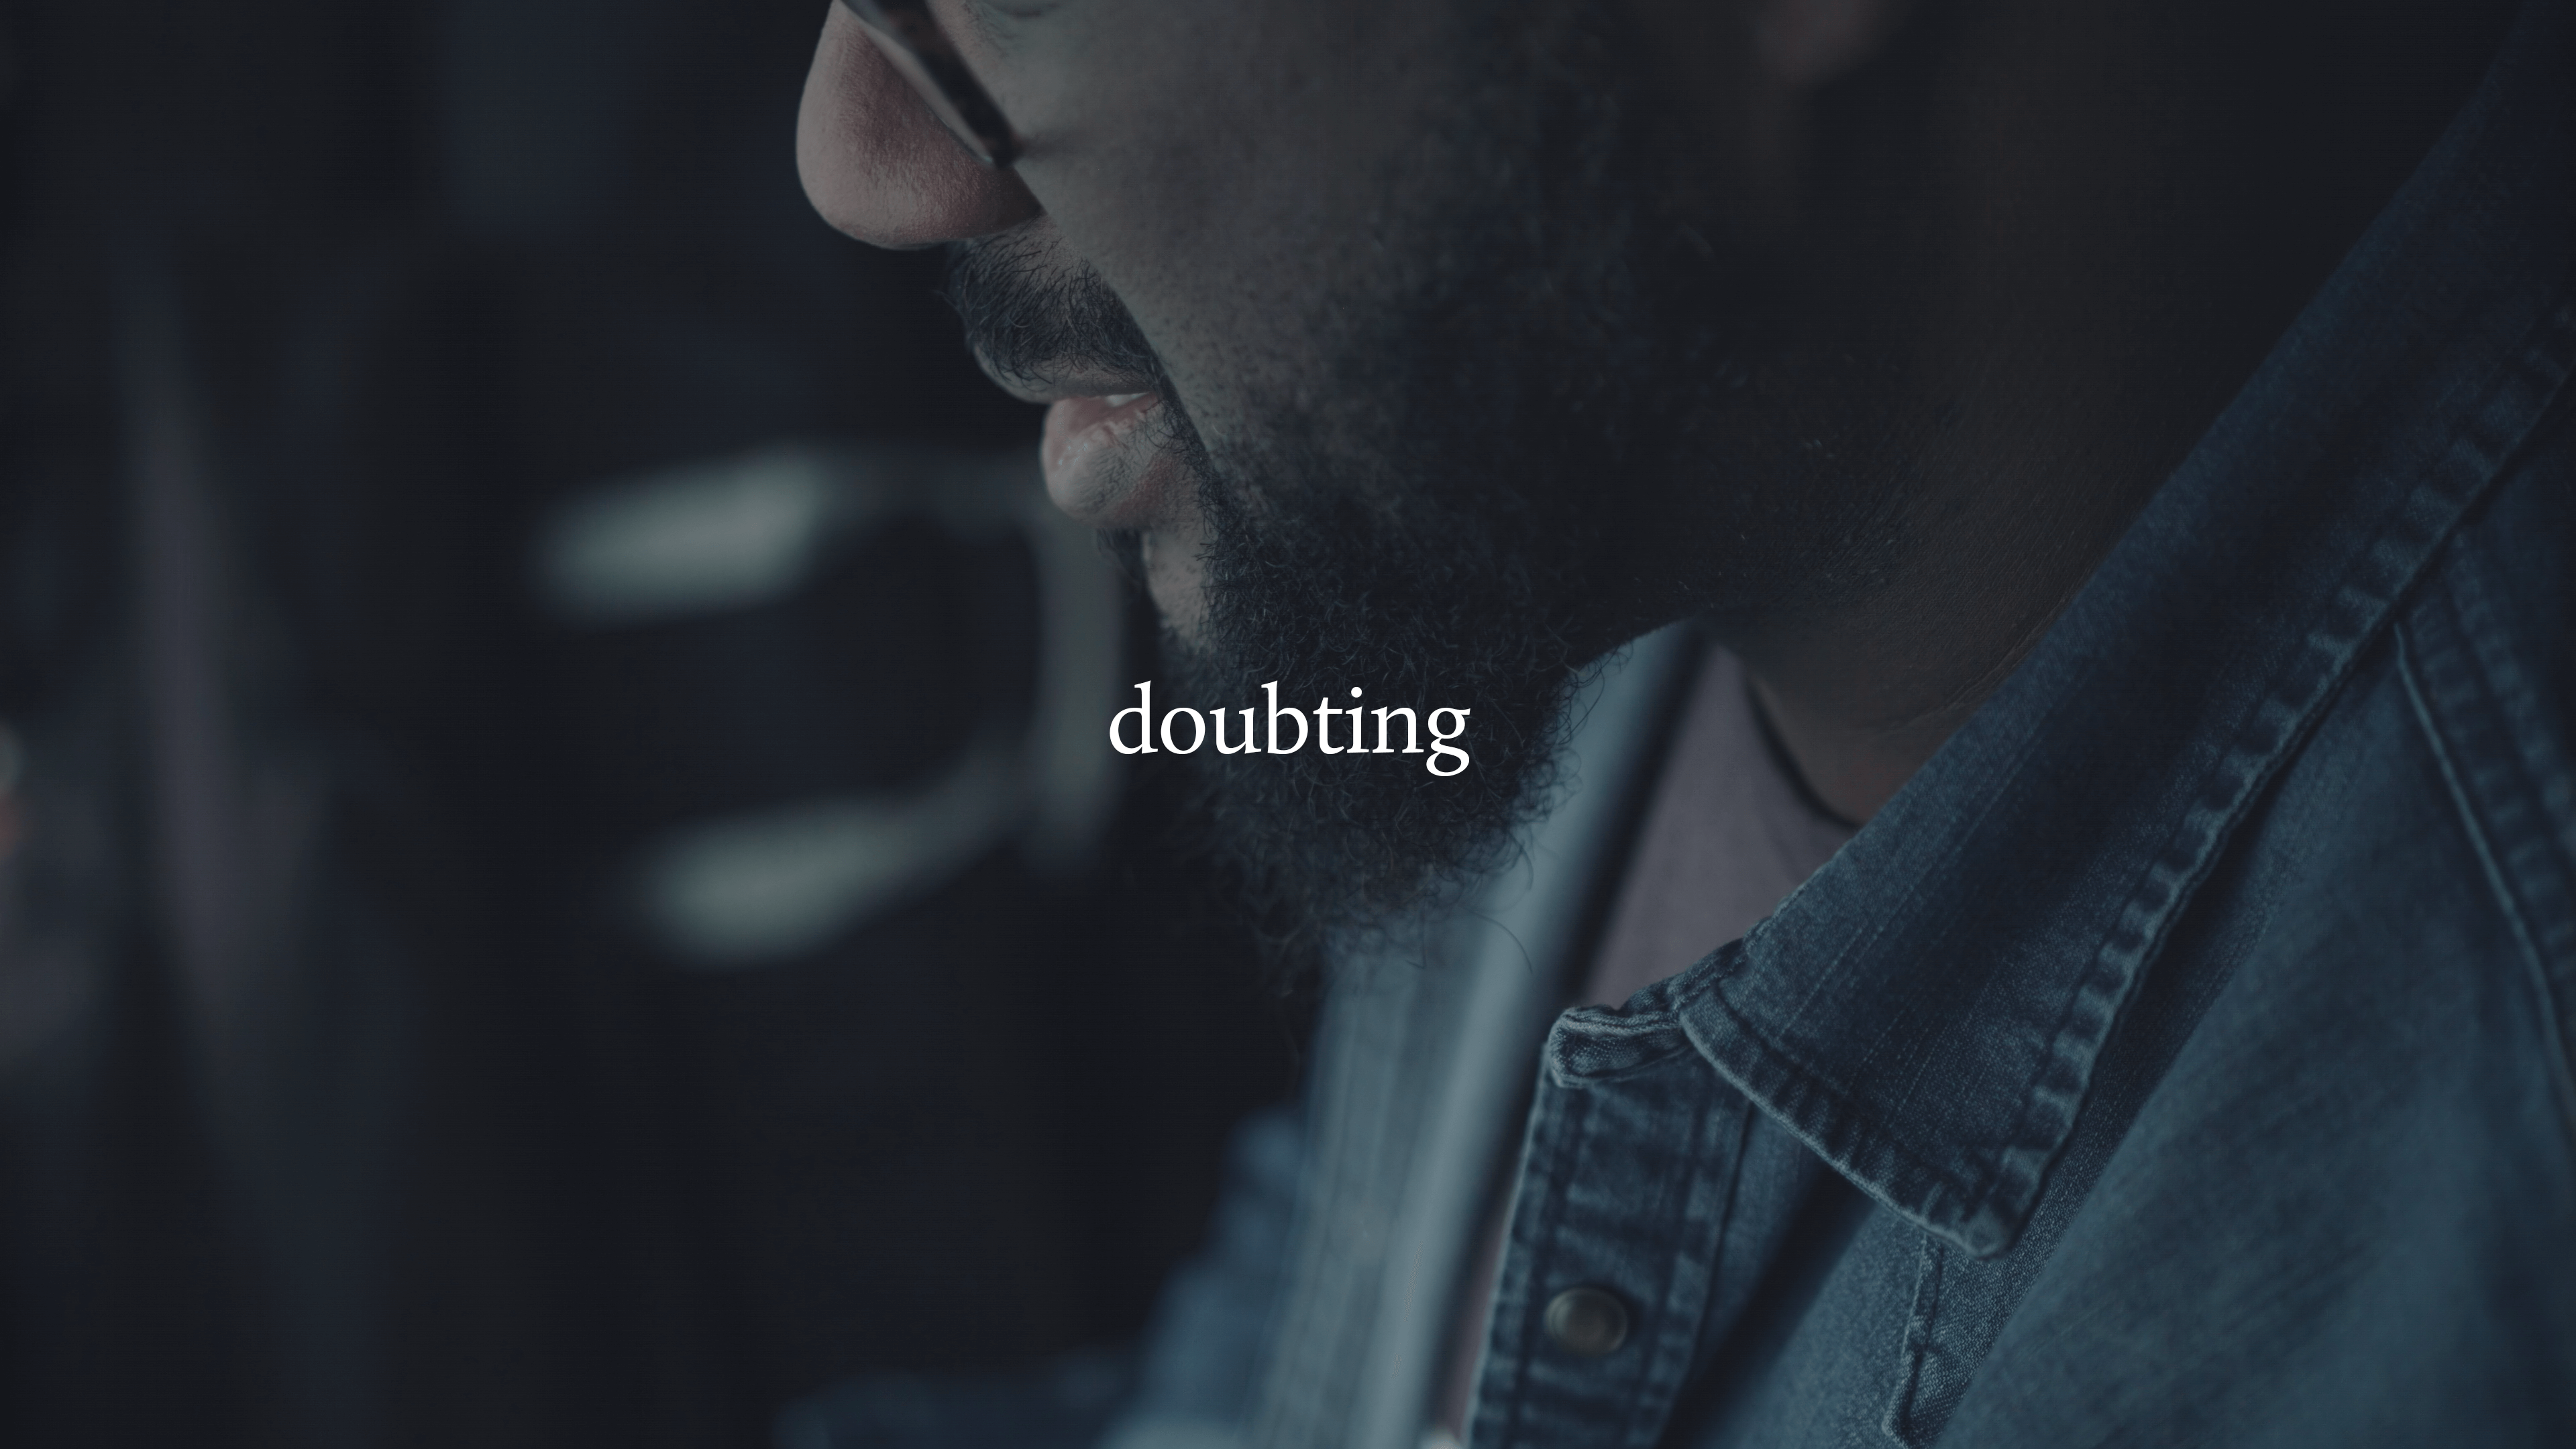 Sermon Series Ideas #2: Doubting